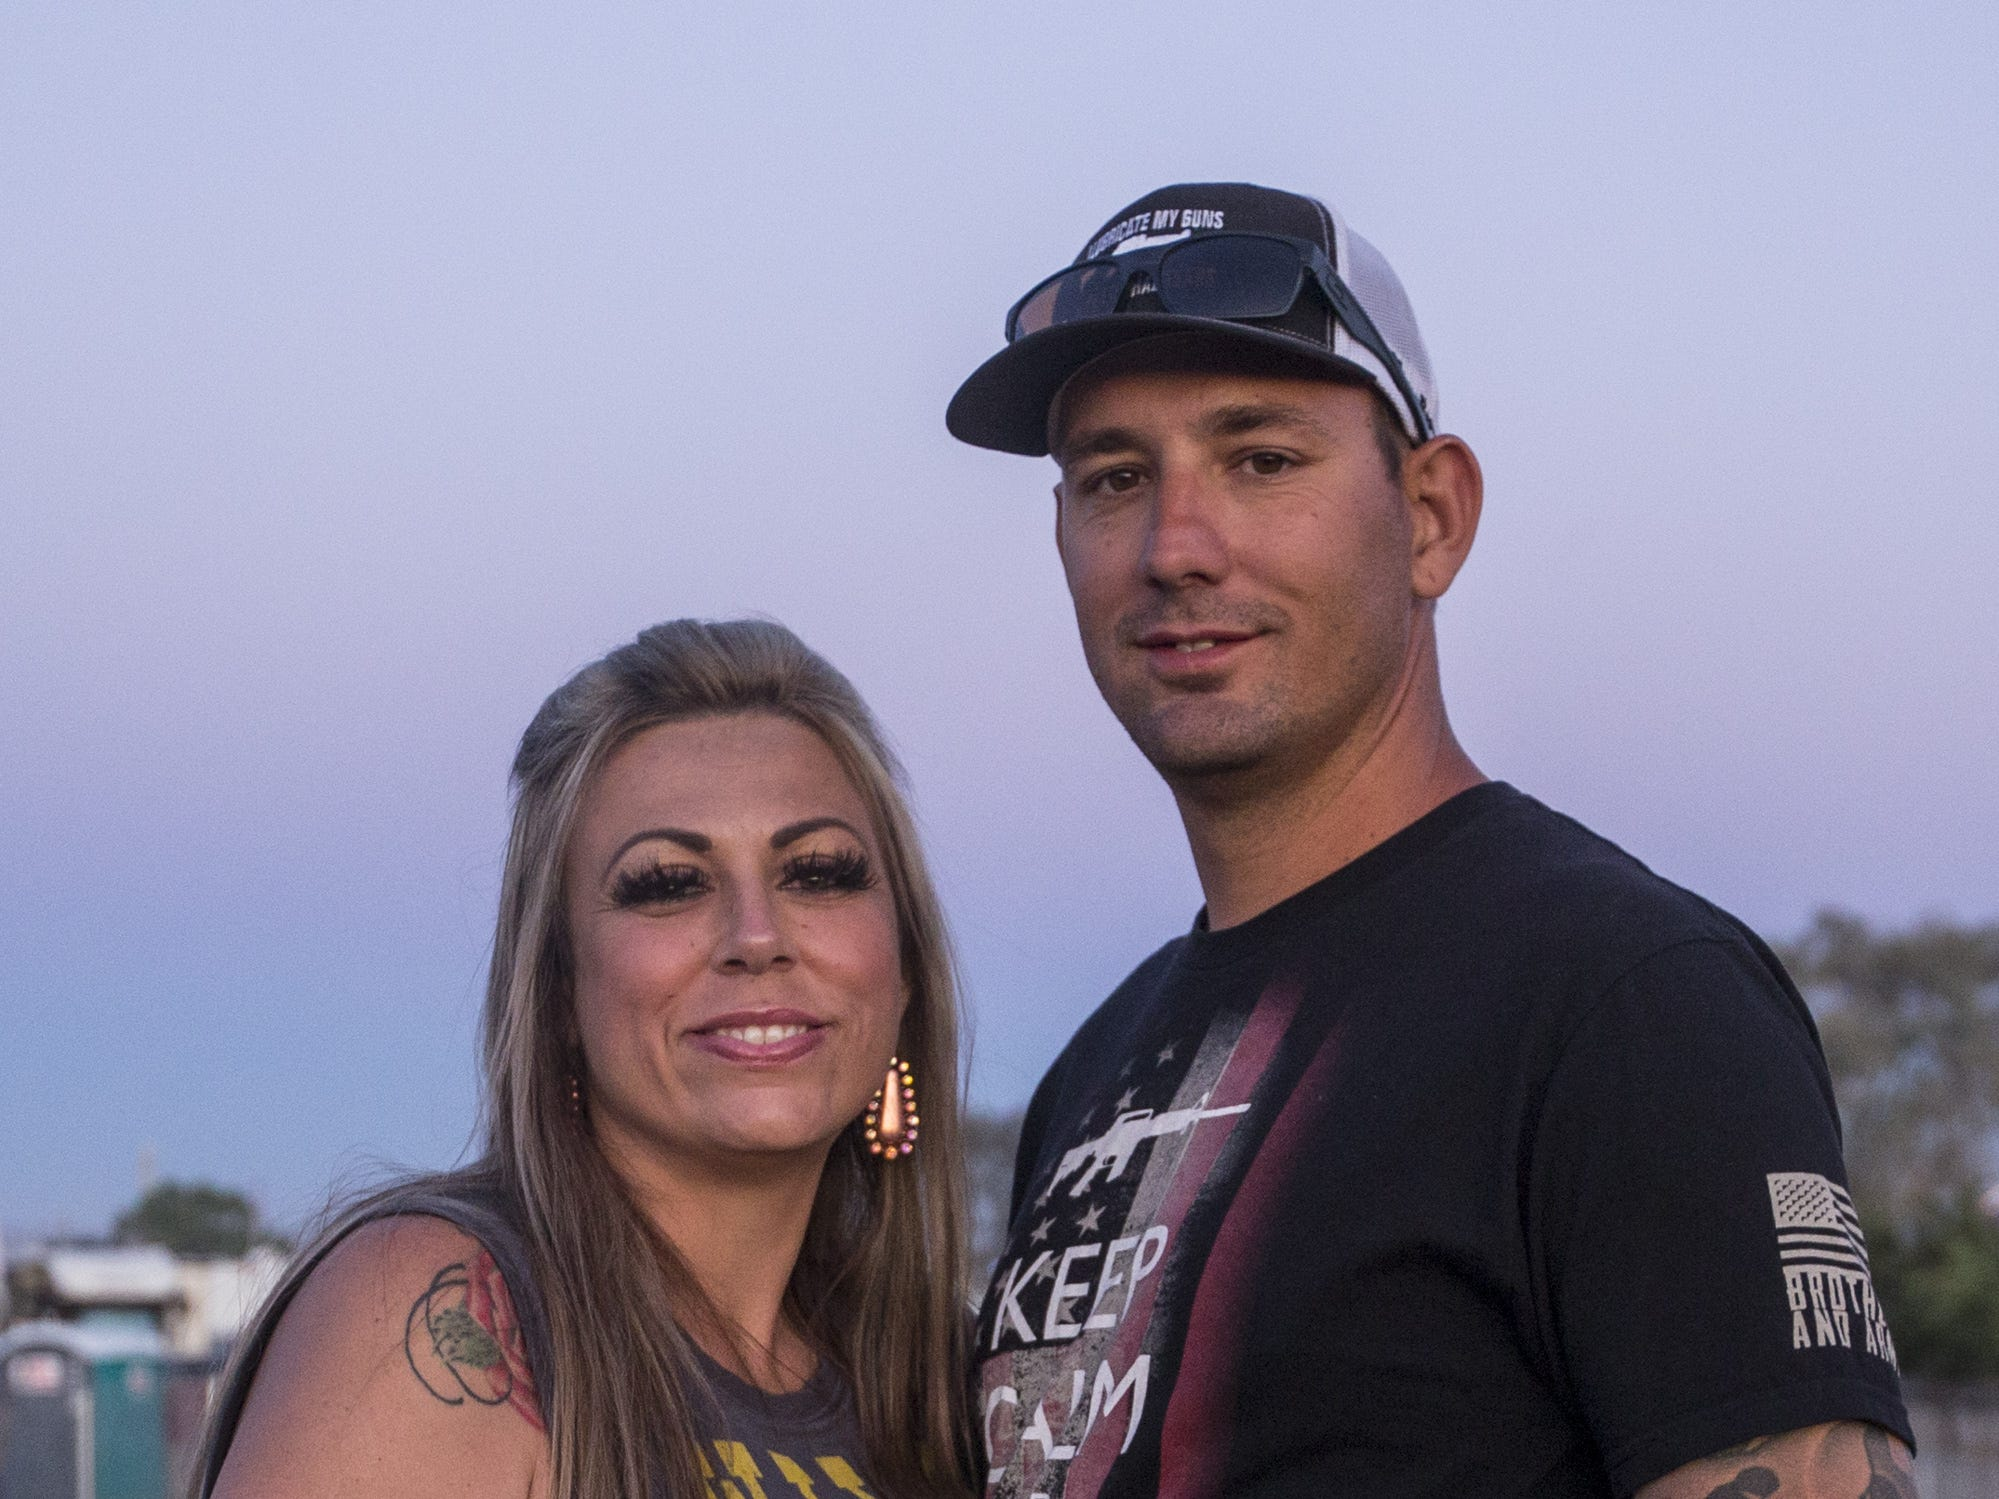 Rose and Doug Dibona pose for a portrait on Saturday, April 13, 2019, during Day 3 of Country Thunder Arizona in Florence, Ariz.